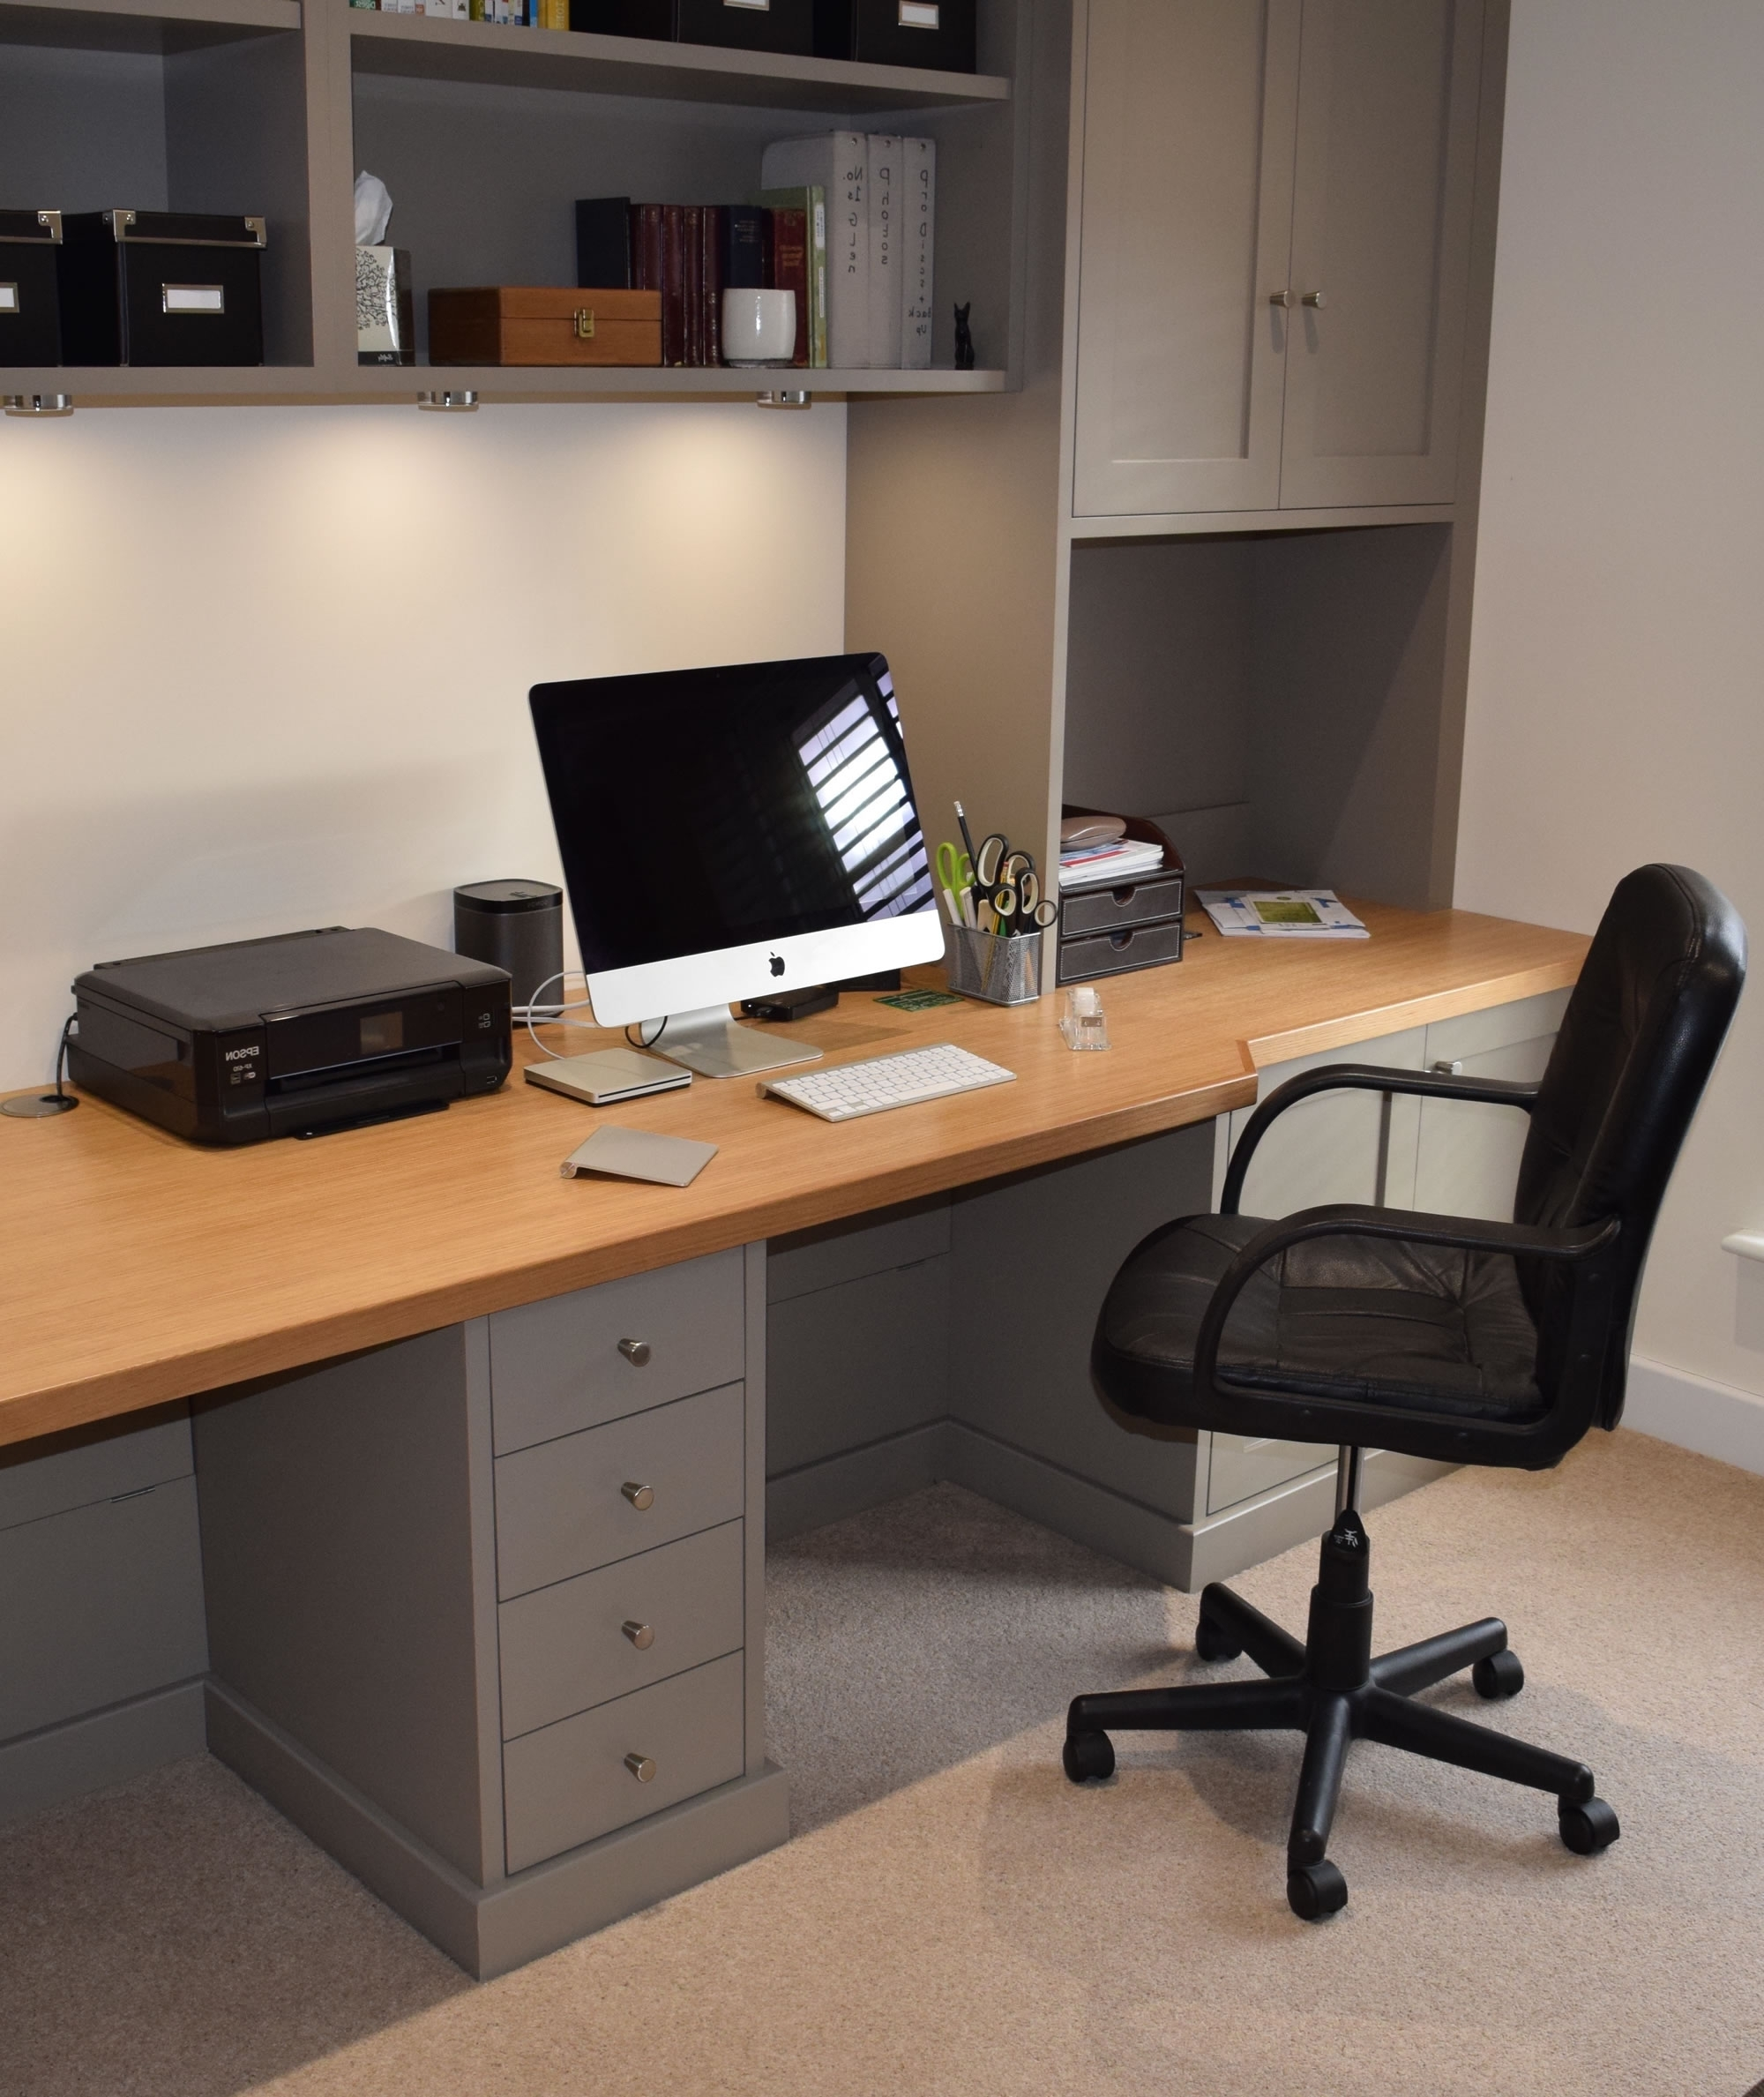 Fitted Study Furniture For Widely Used Bespoke Study Furniture – Gallery (View 5 of 15)